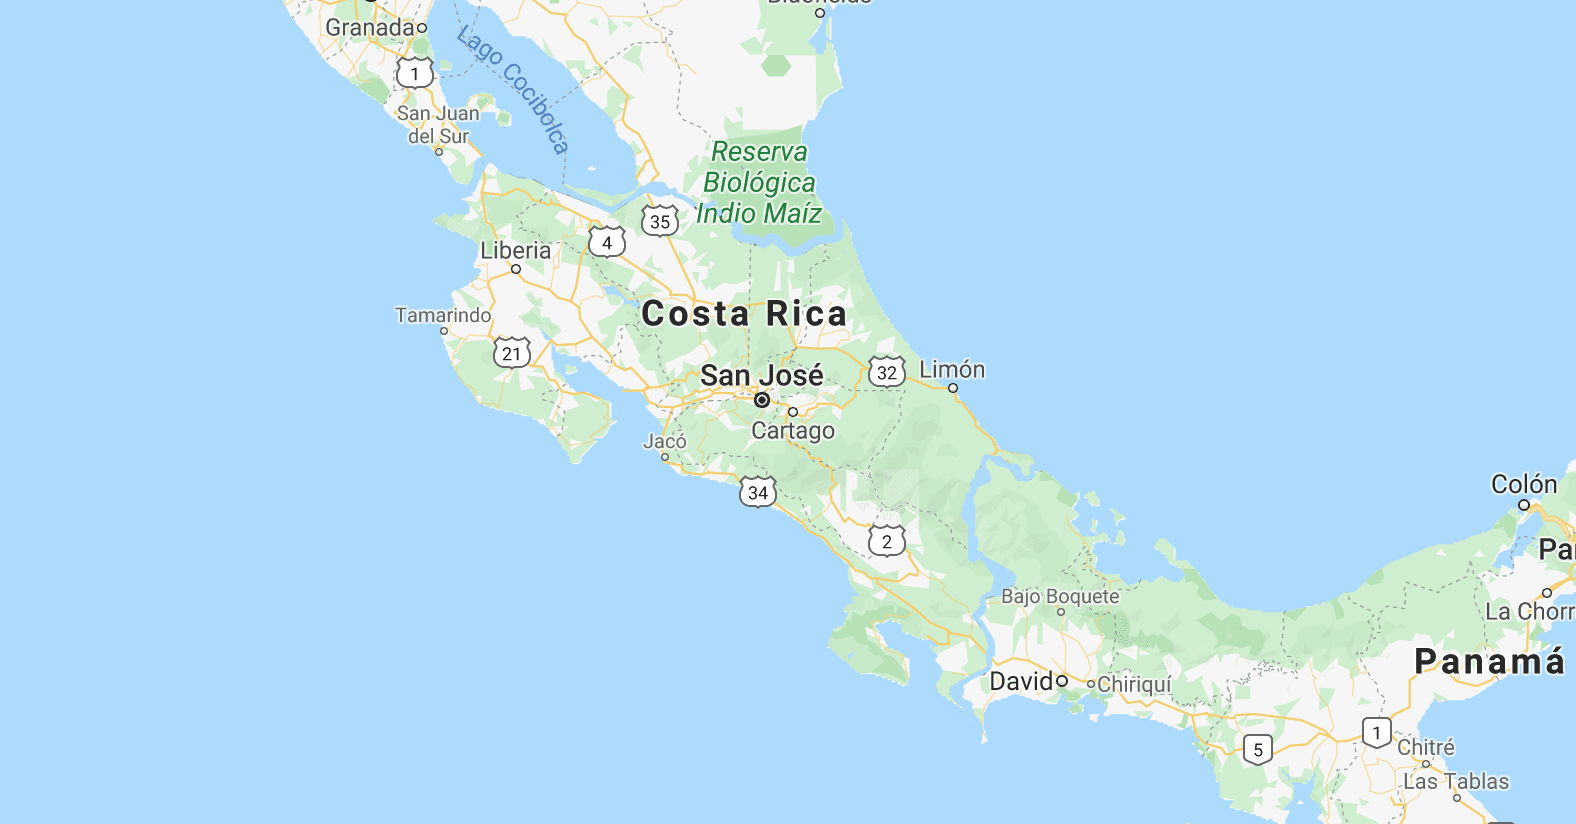 Updated map of Costa Rica